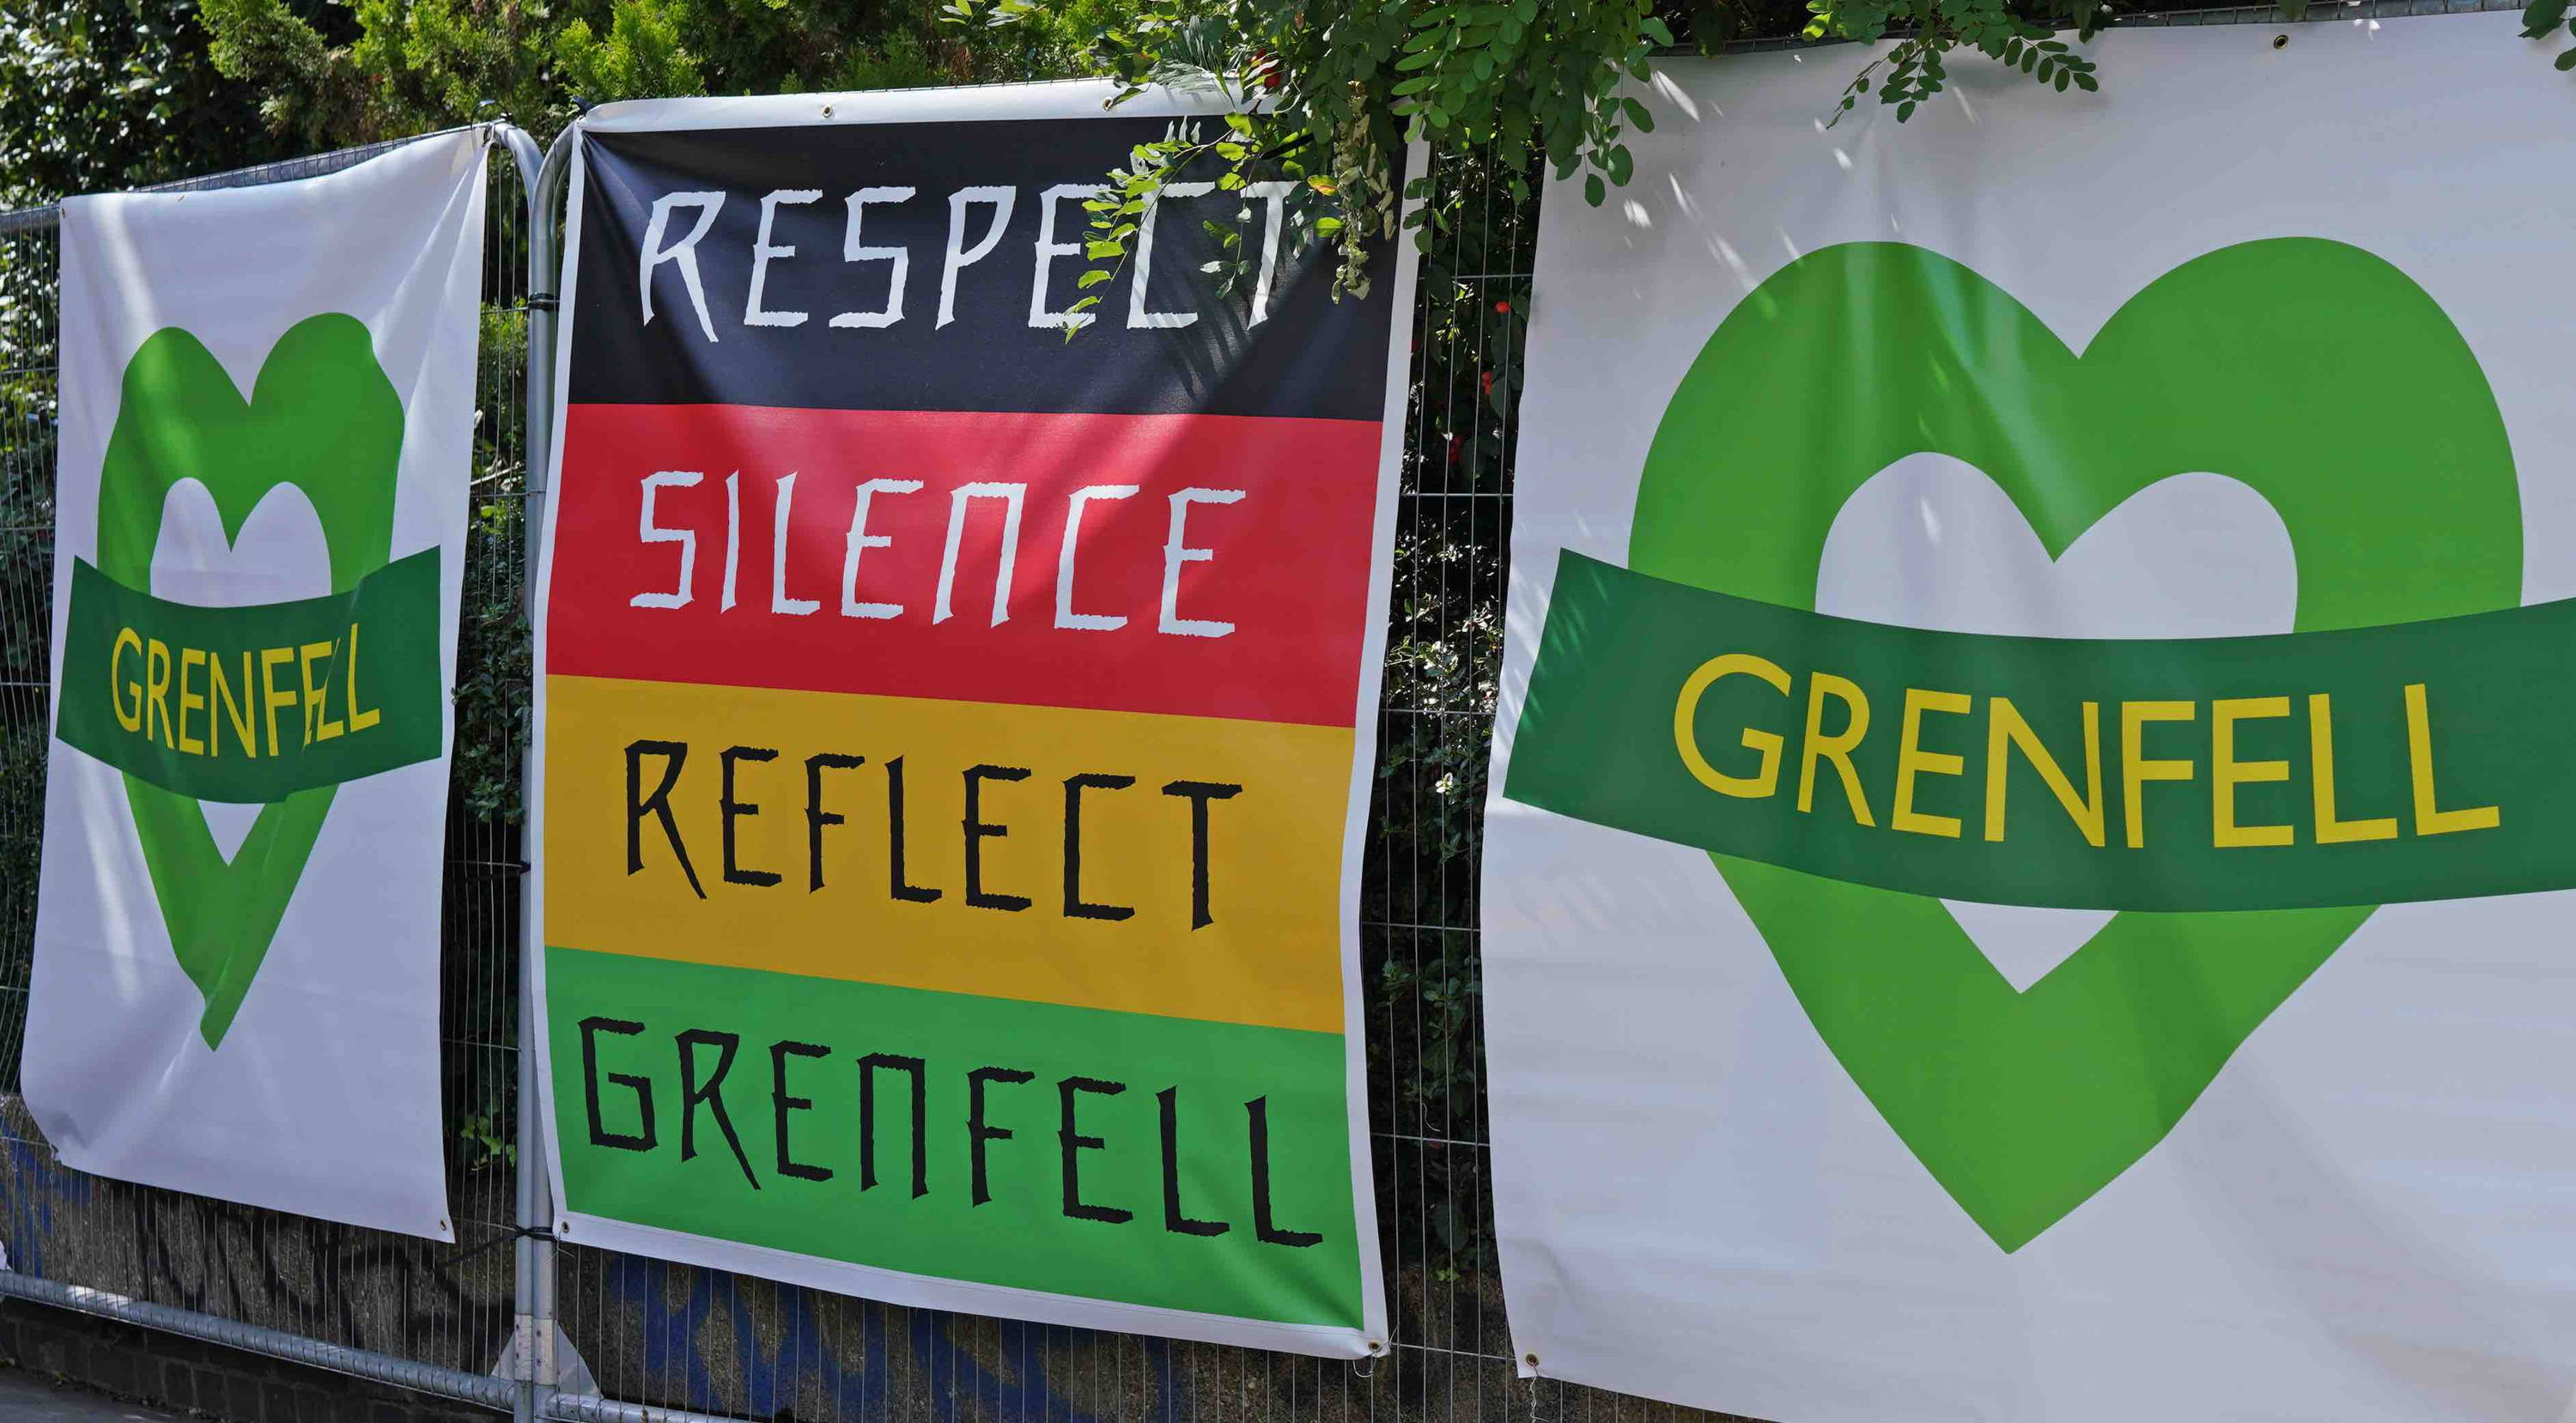 Grenfell green hearts and sign reading: respect, silence, reflect, Grenfell